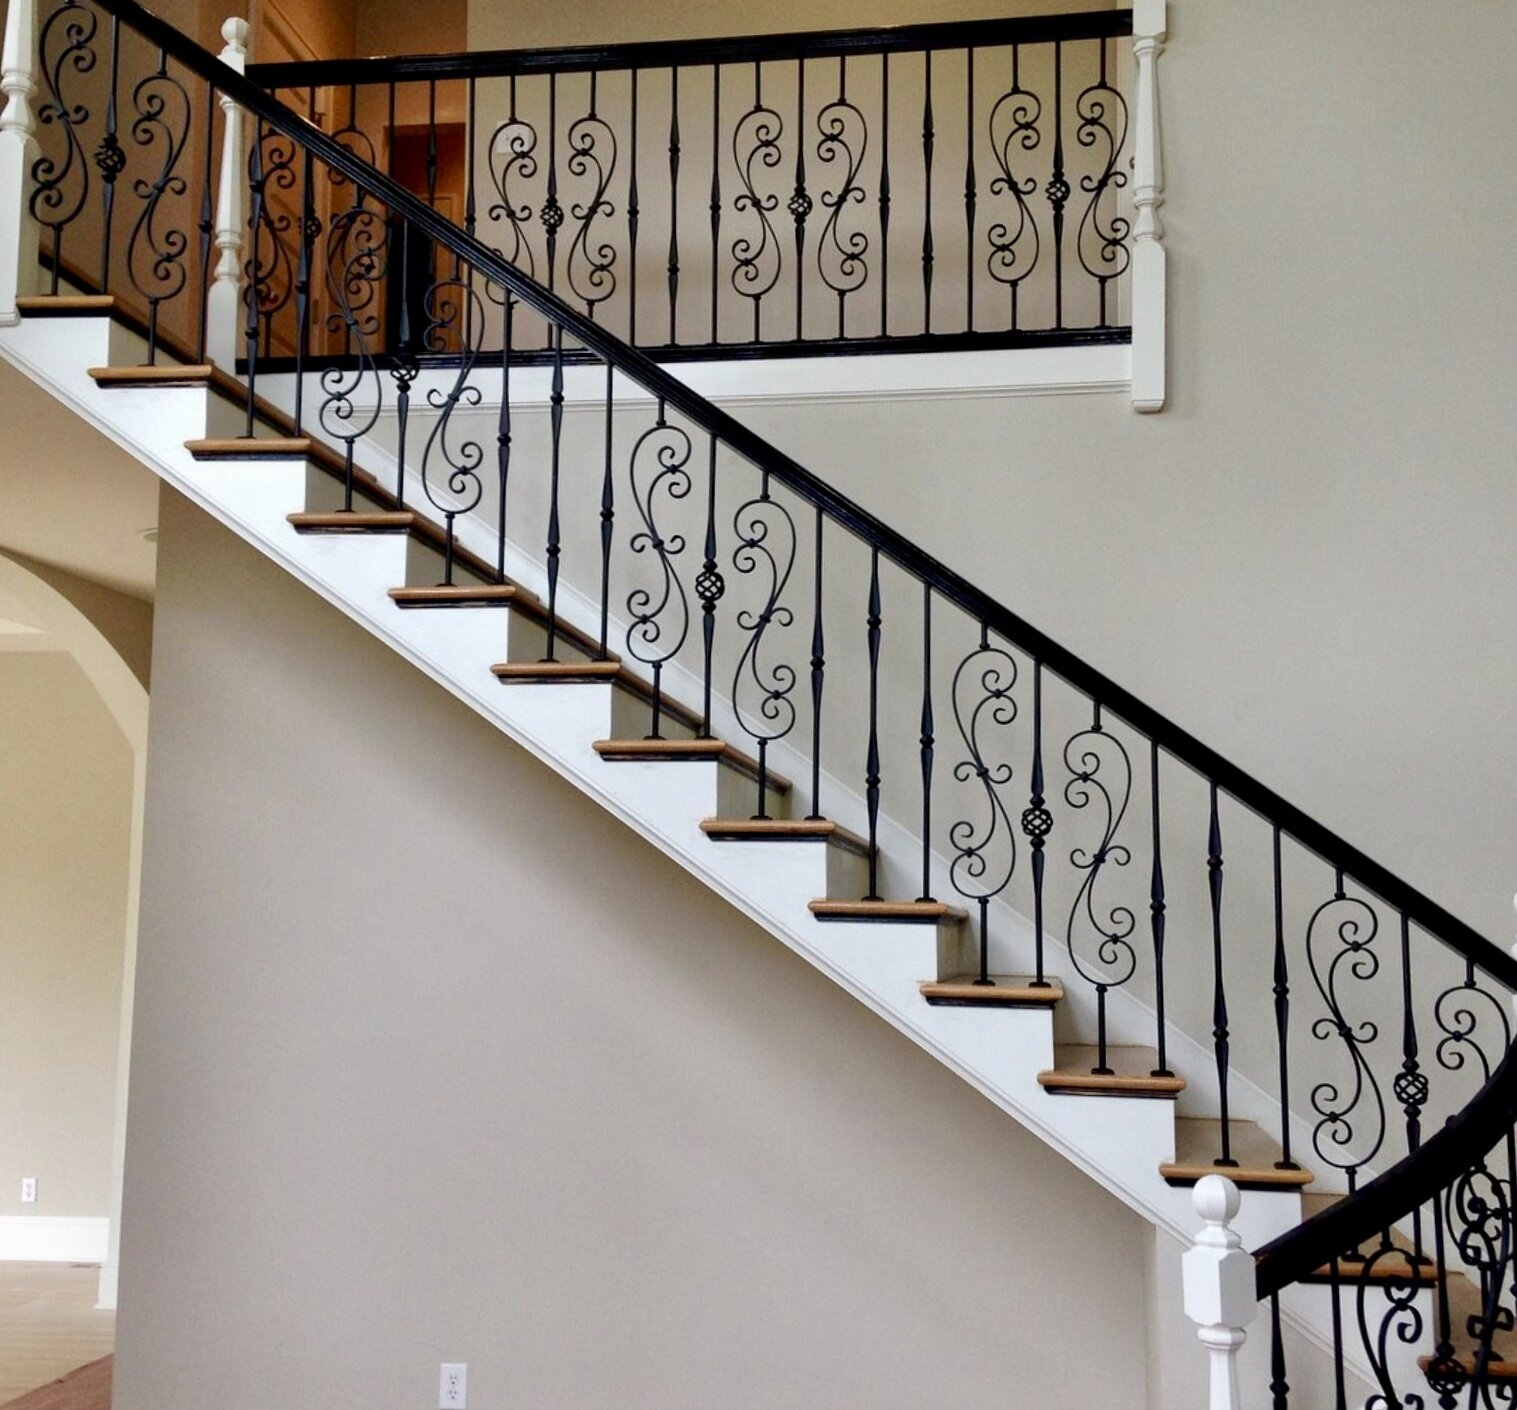 Wrought Iron Balusters Charlotte Nc Stair Railings | Metal Railing For Steps Outside | Front Porch | Deck Stair | Aluminum | Deck Railing | Staircase